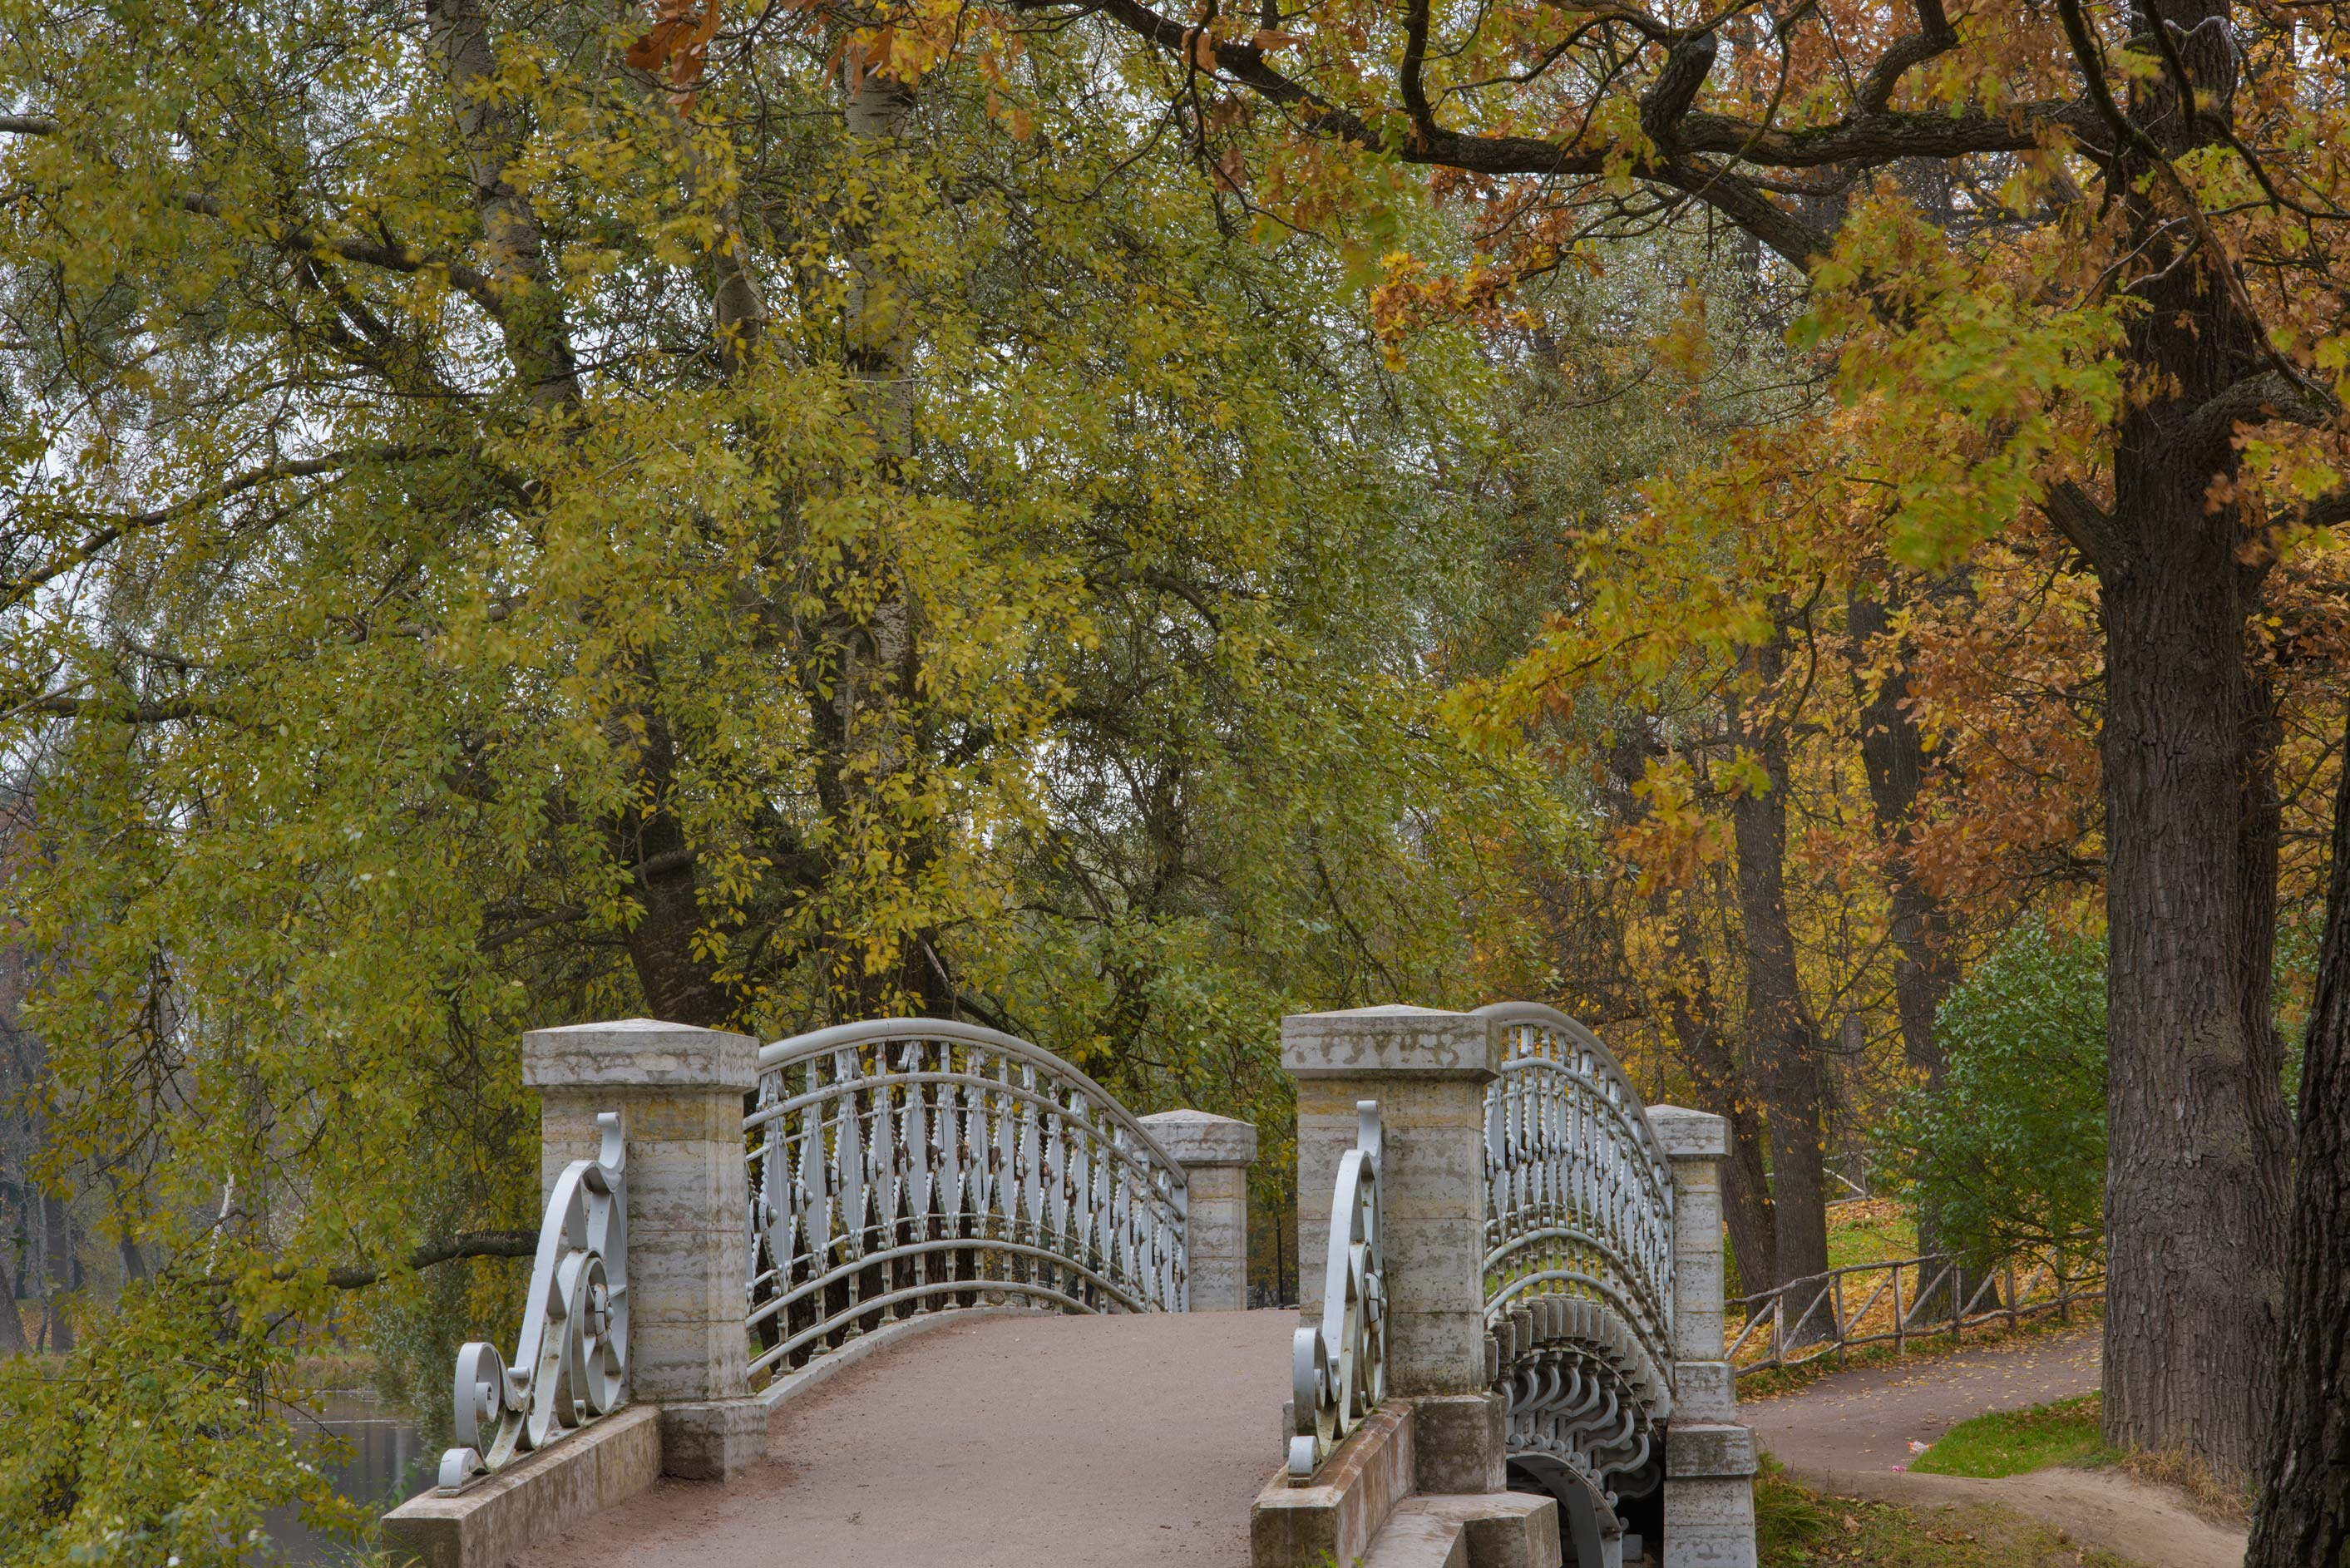 Iron foot bridge in Gatchina Park. Gatchina, a suburb of St.Petersburg, Russia